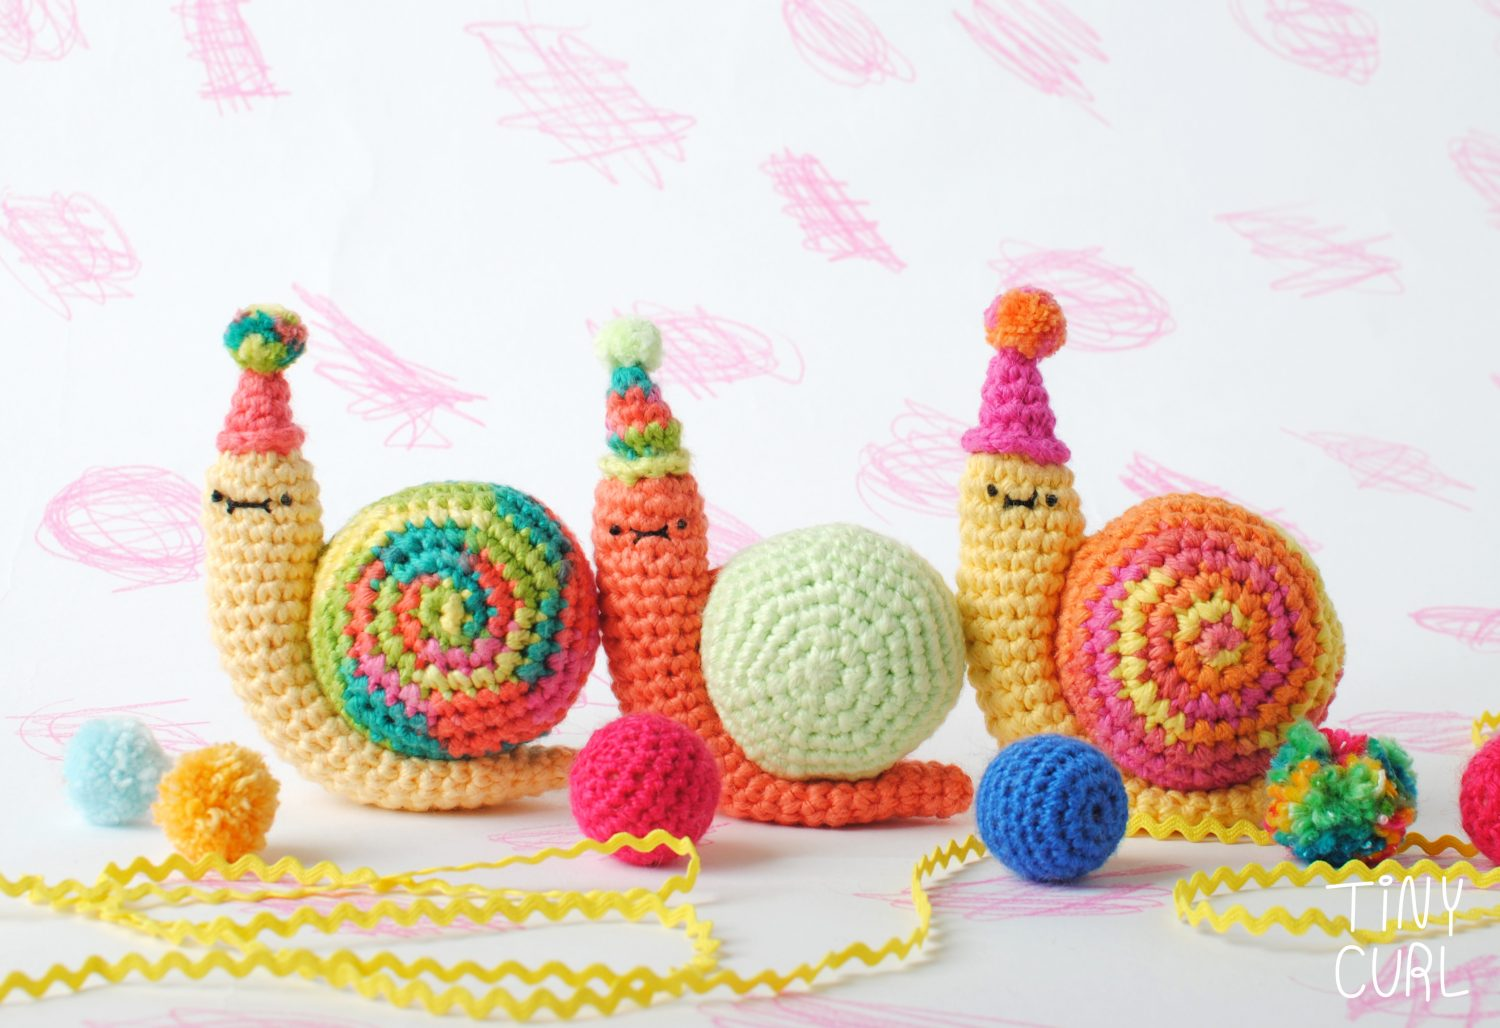 Party Snail Amigurumi Crochet Pattern